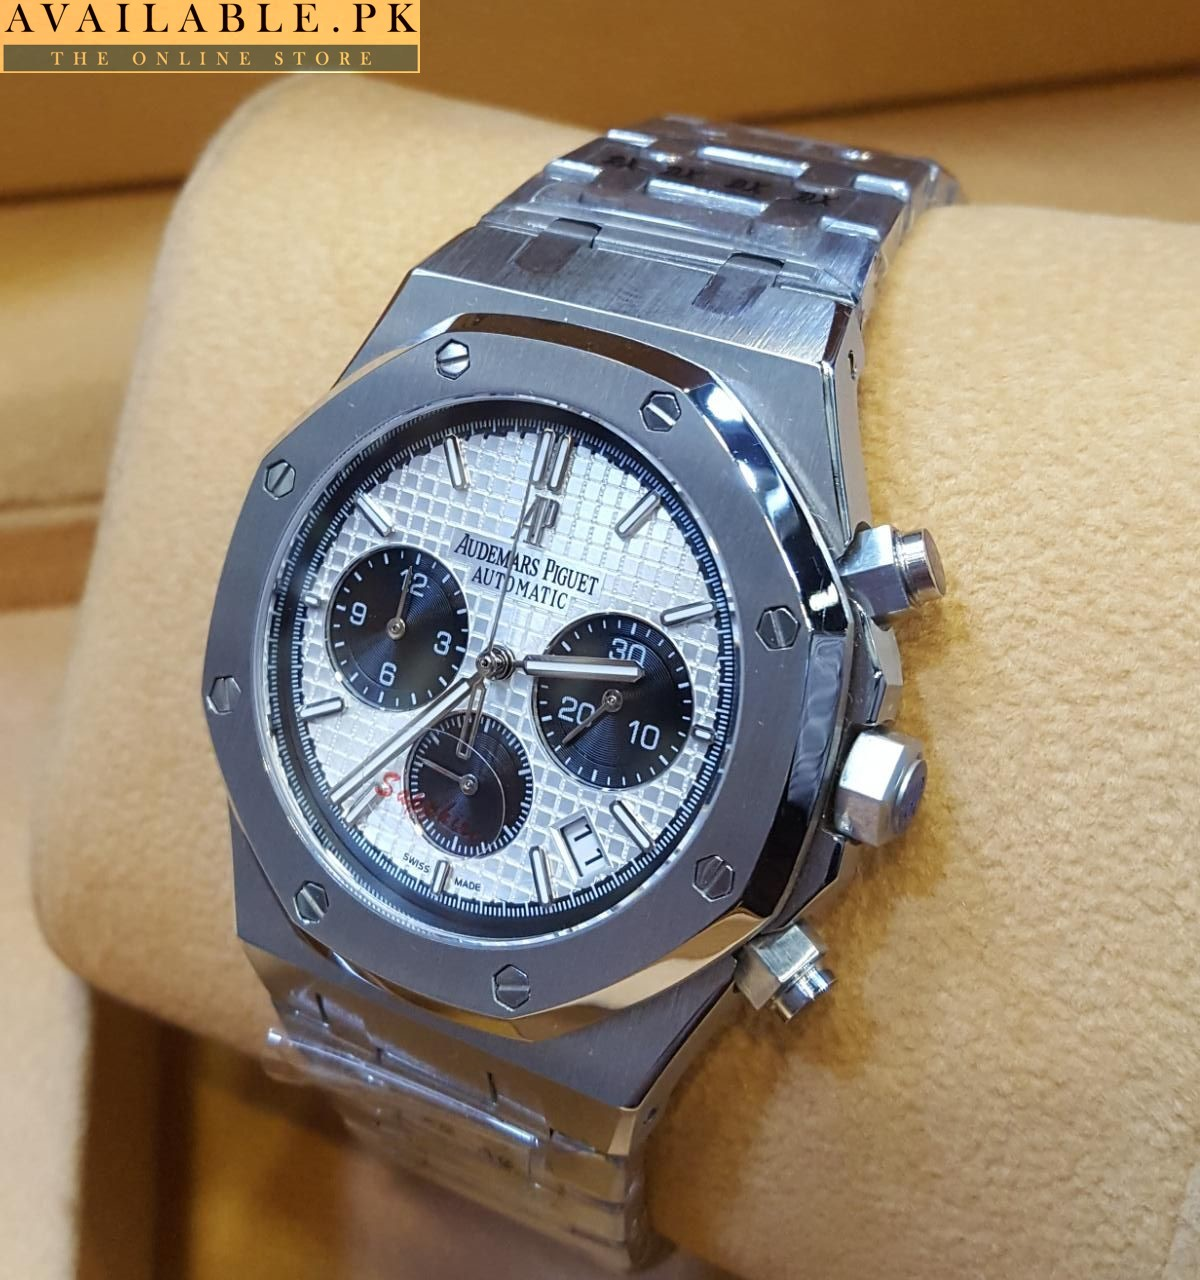 02868e9463df Audemars Piguet Royal Oak Black Dial Automatic Men s Chronograph Watch Price  In Pakistan